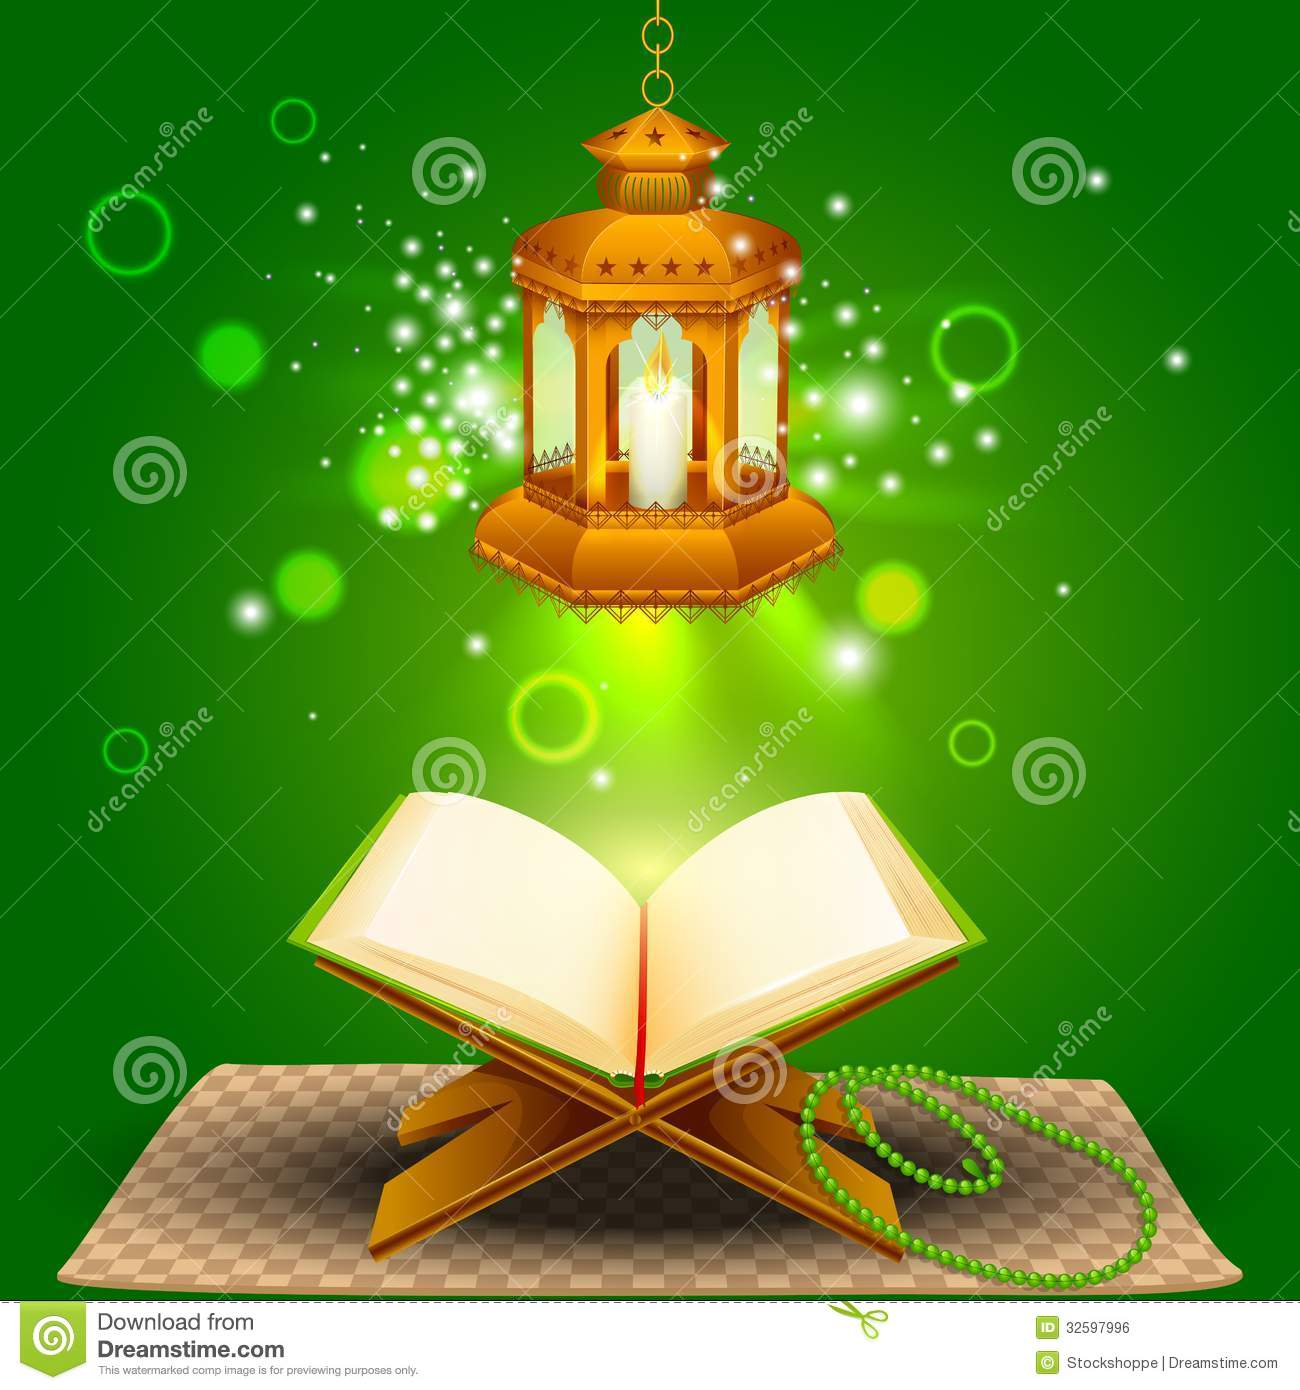 About Time Travel In Quran